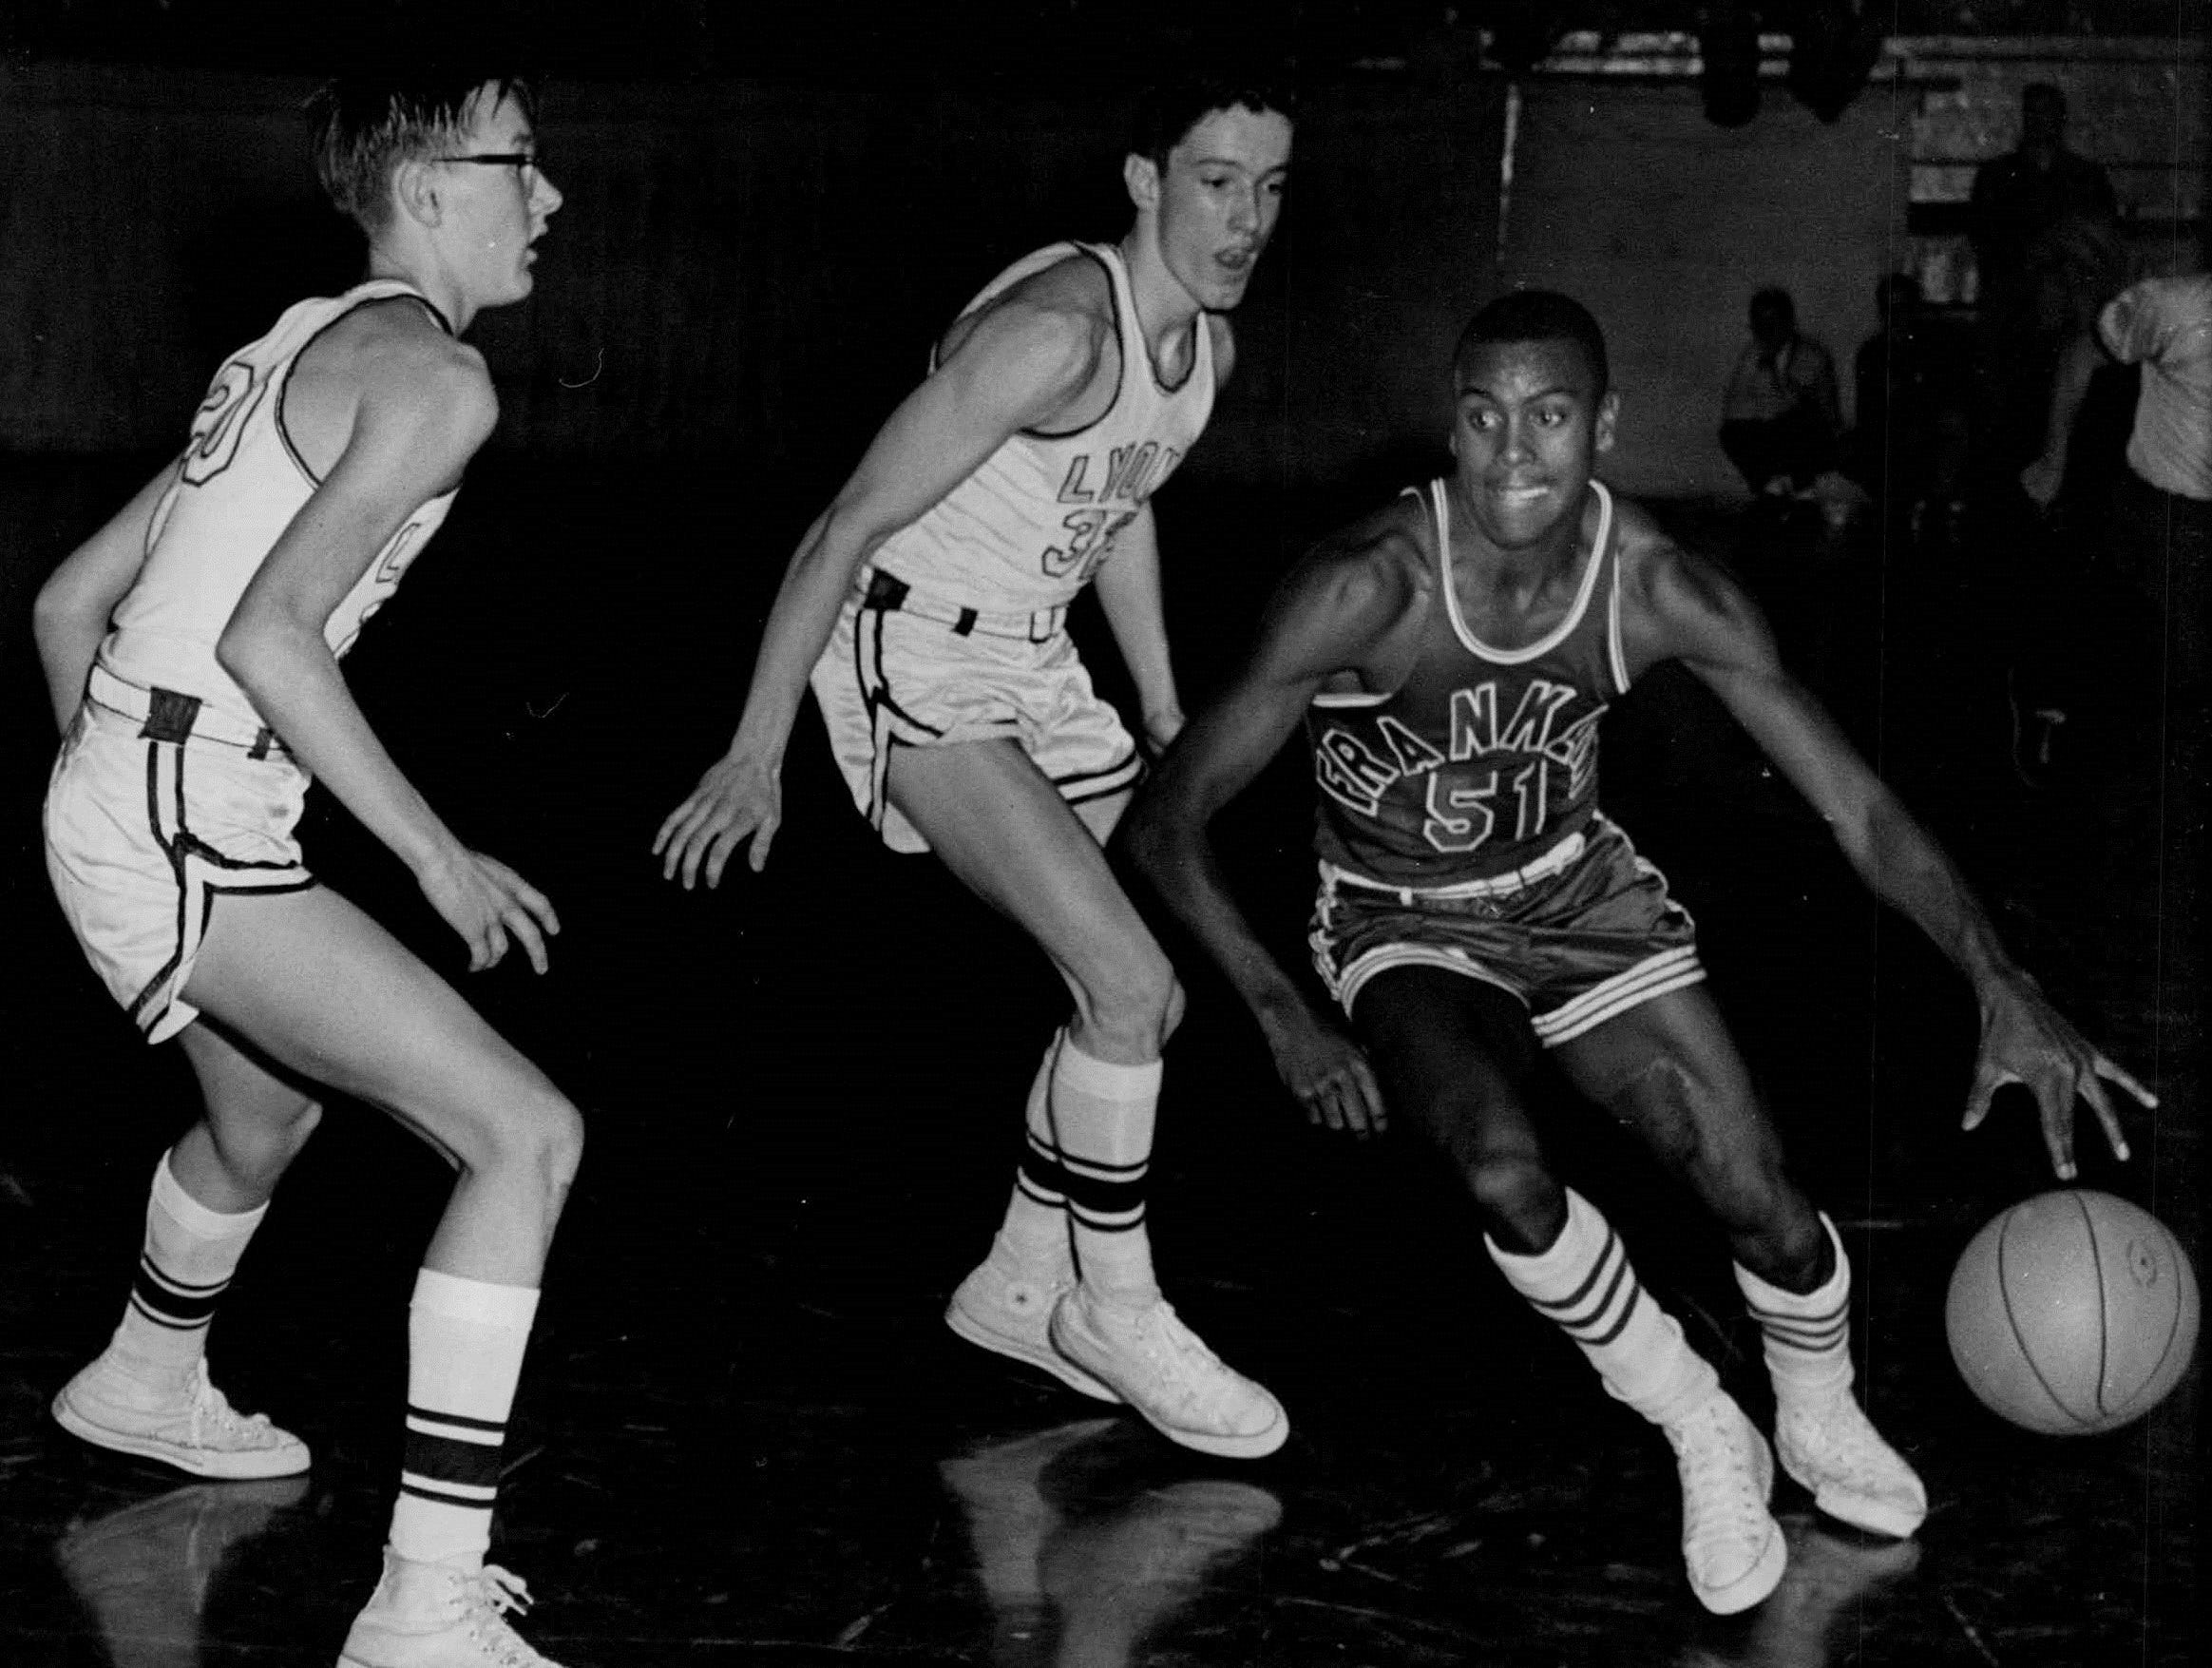 1961: Trent Jackson of Franklin, right, dribbles past two Lyons defenders, including Jim Boeheim, left, in the 1961 Section V Class AA semifinals. Franklin won the game but lost to Webster in the championship.